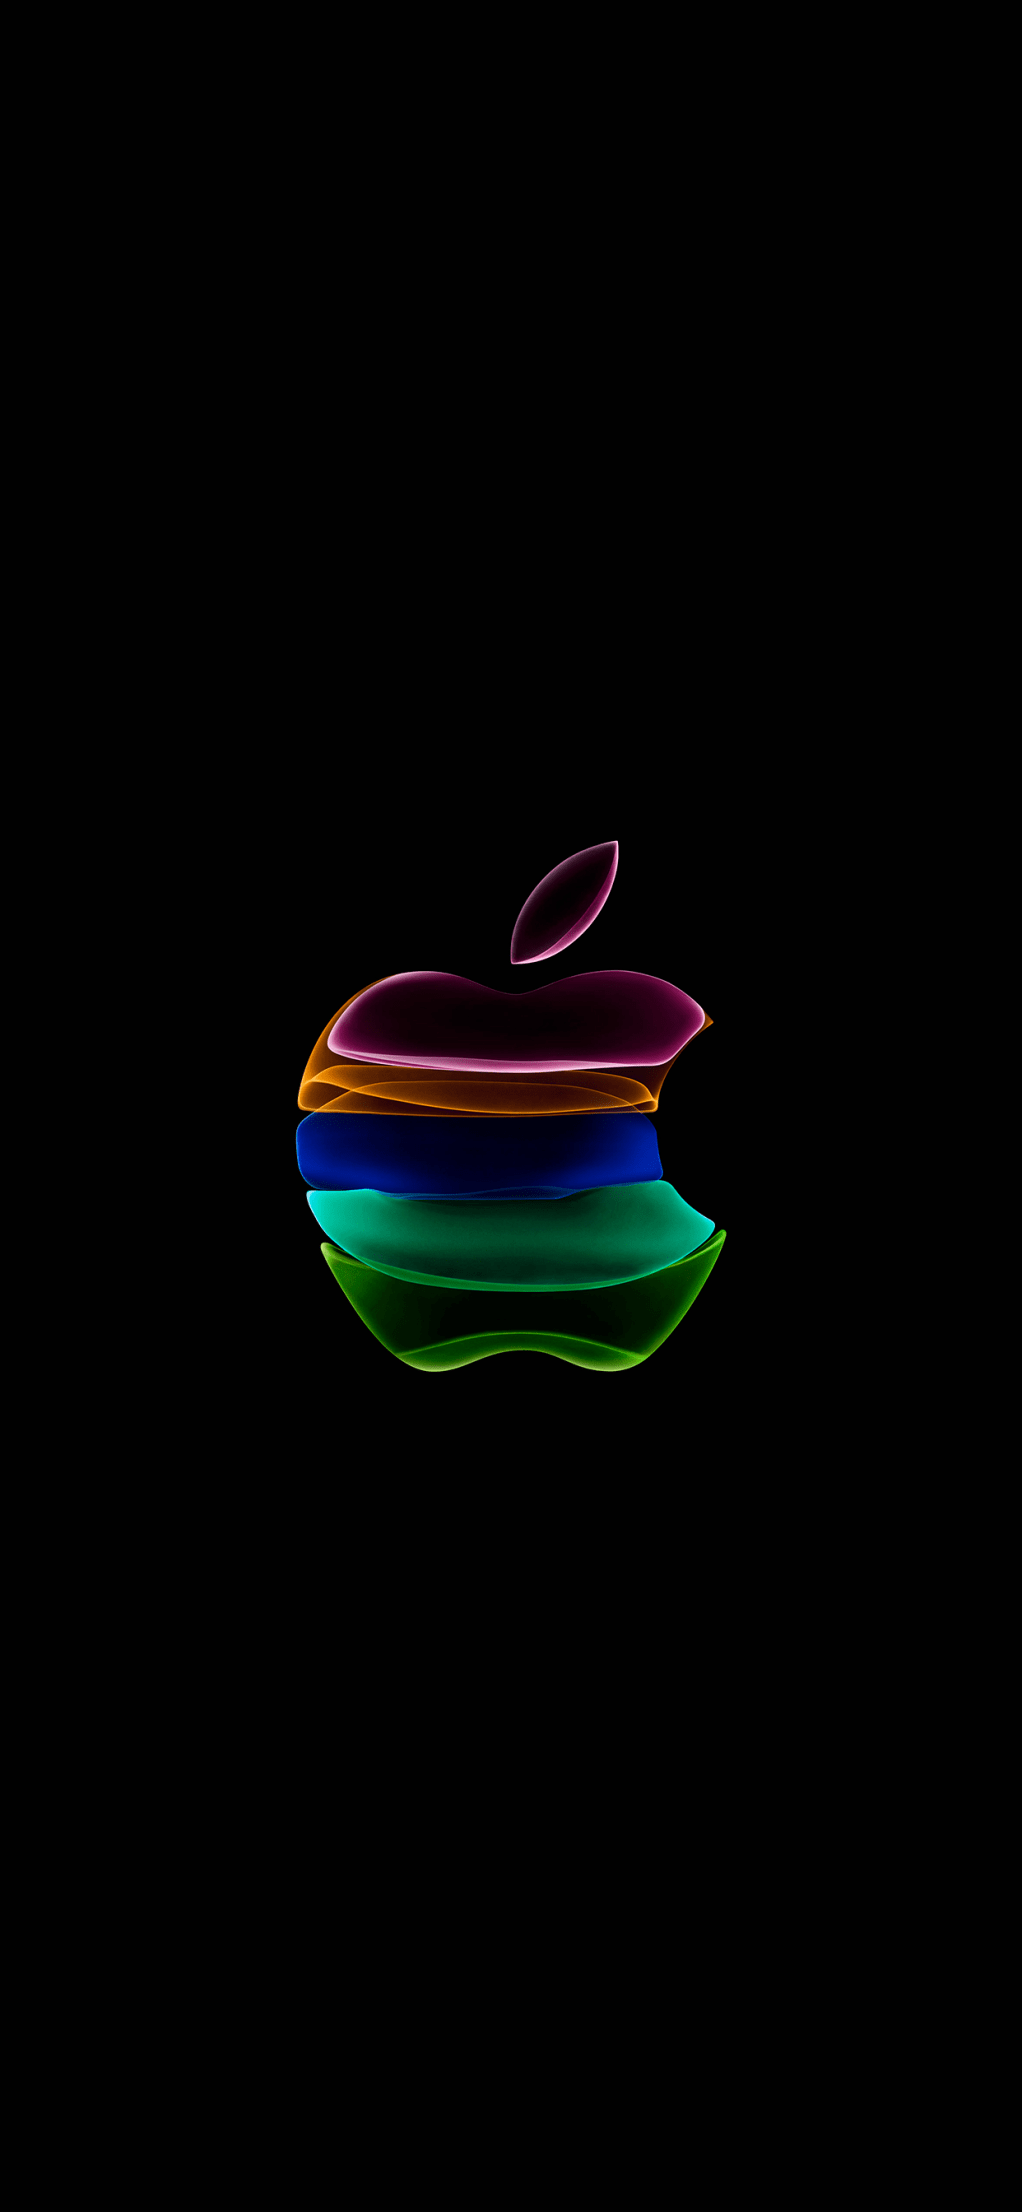 Apple Event Inspired Wallpapers For Iphone Ipad In 2020 Apple Logo Wallpaper Iphone Apple Wallpaper Iphone Iphone Wallpaper Video